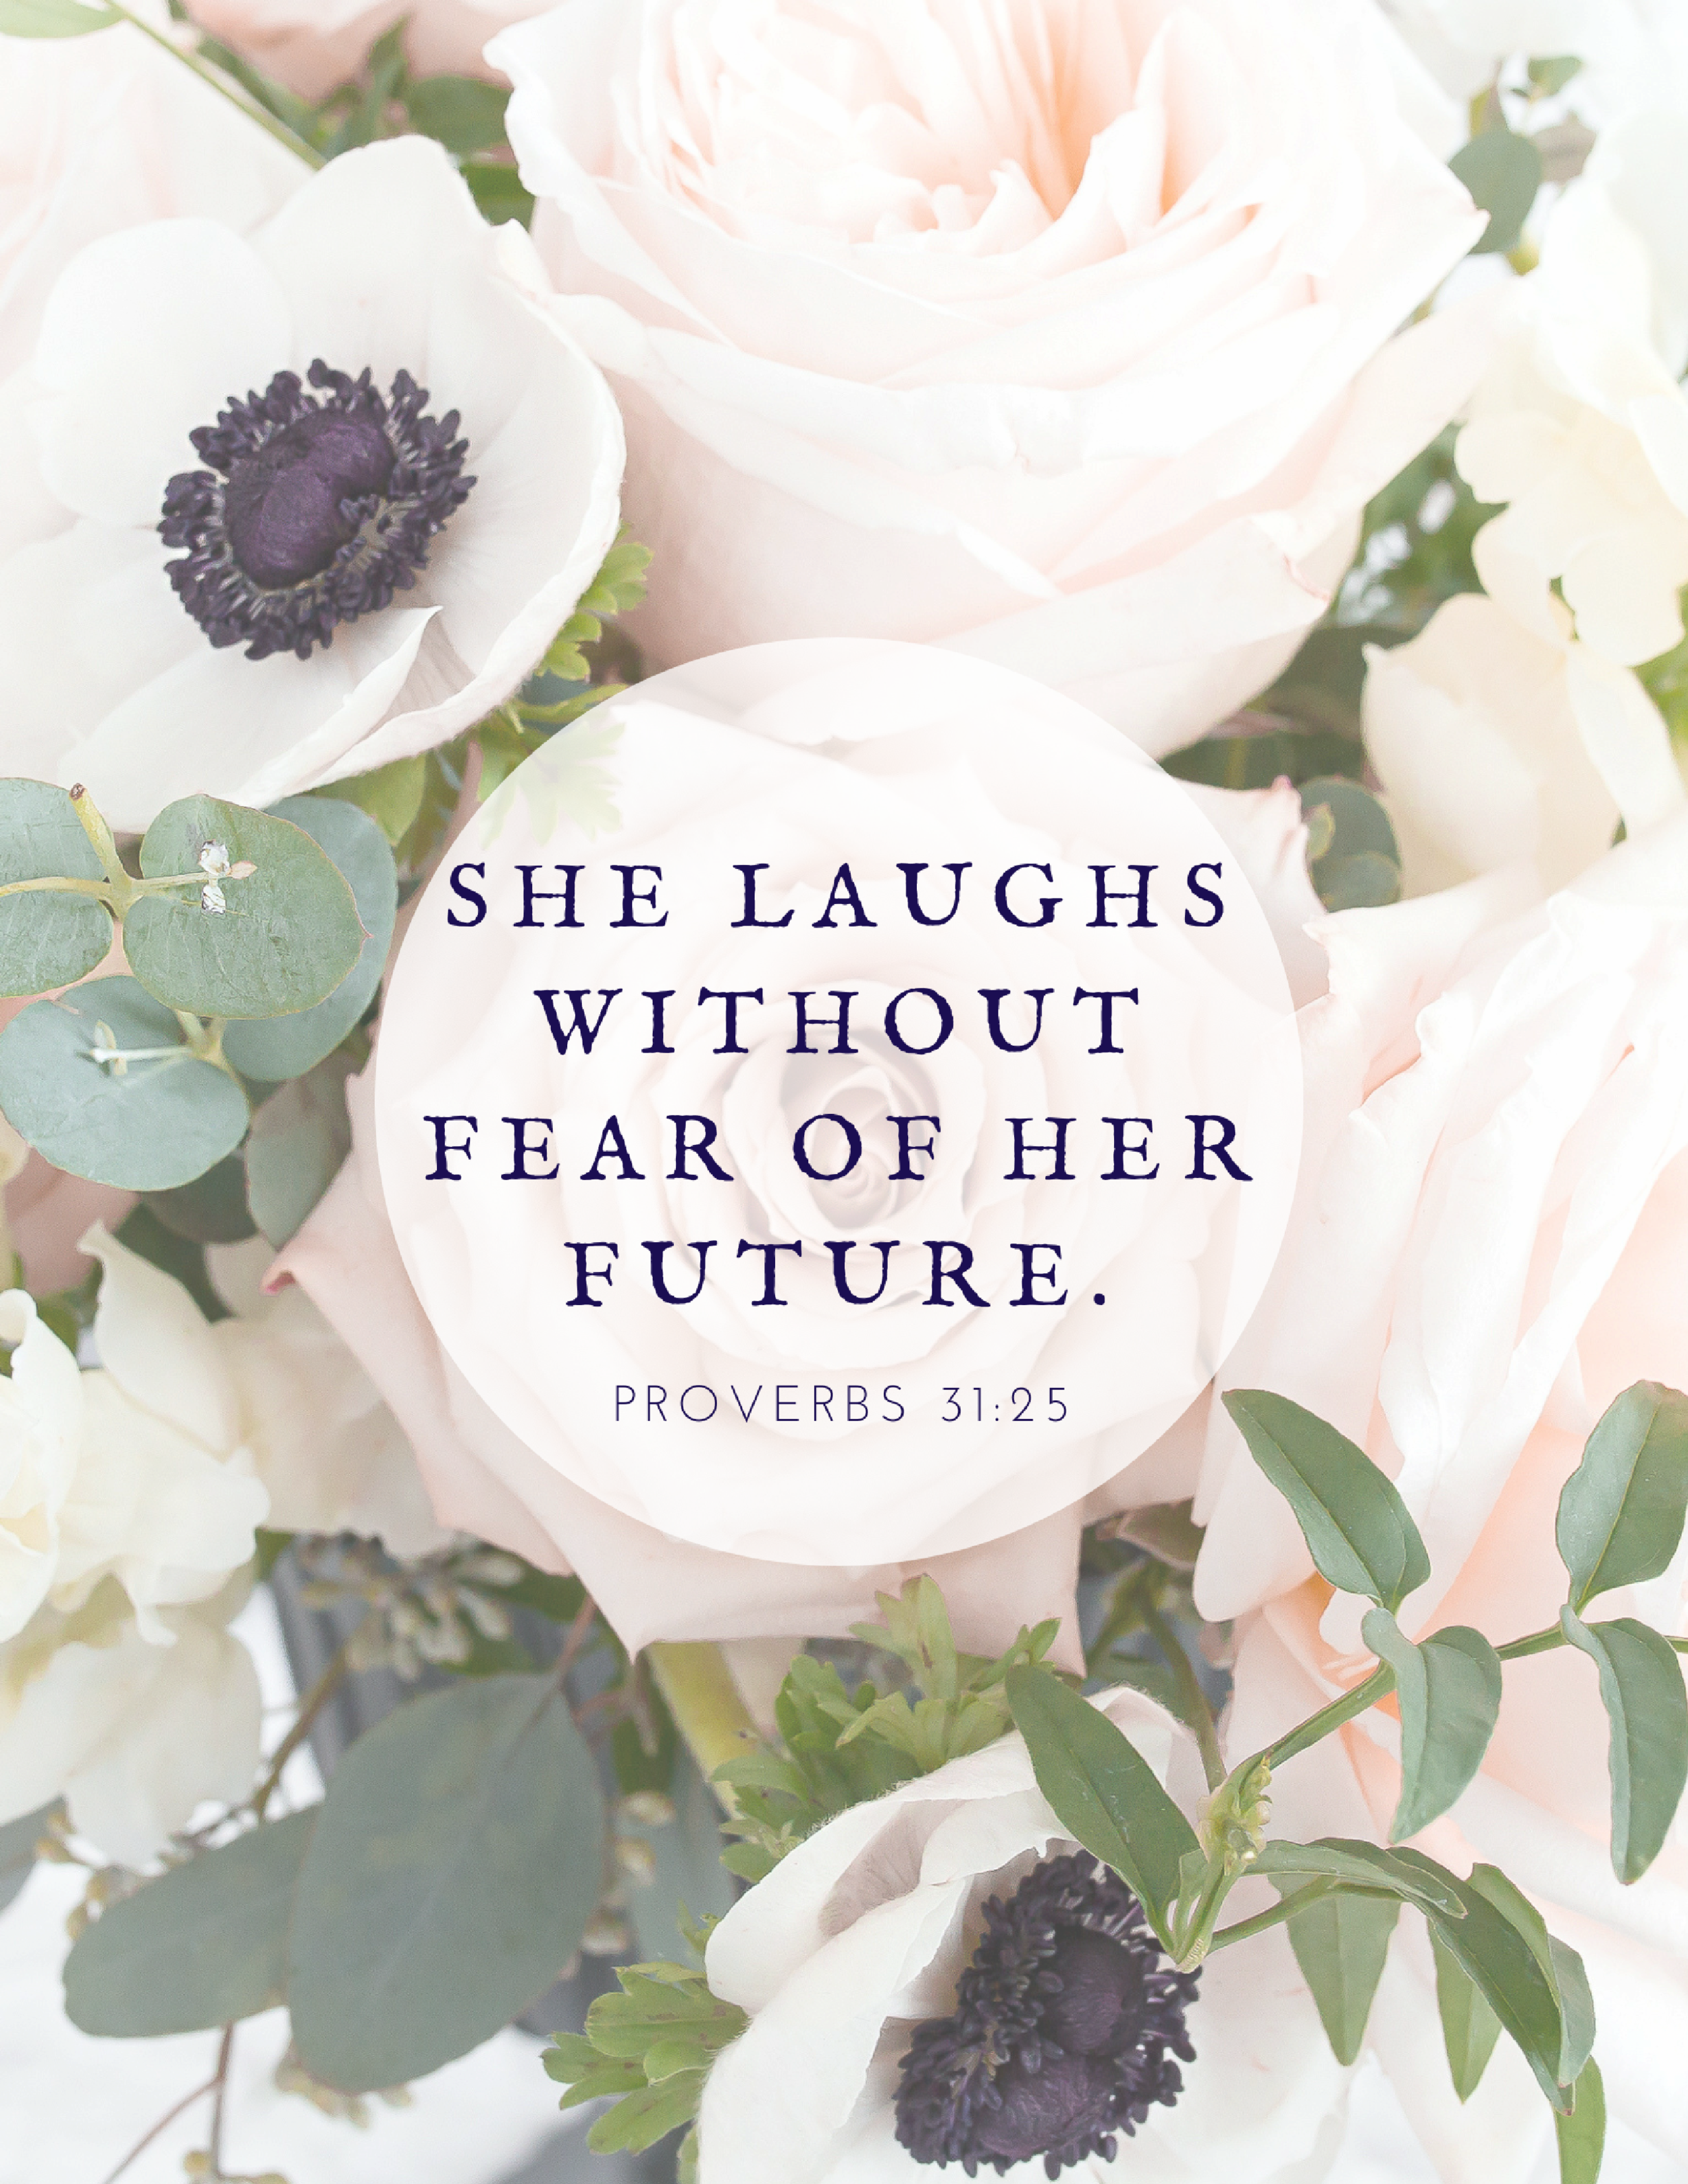 The-proverbs-31-Woman-Laughs-without-fear